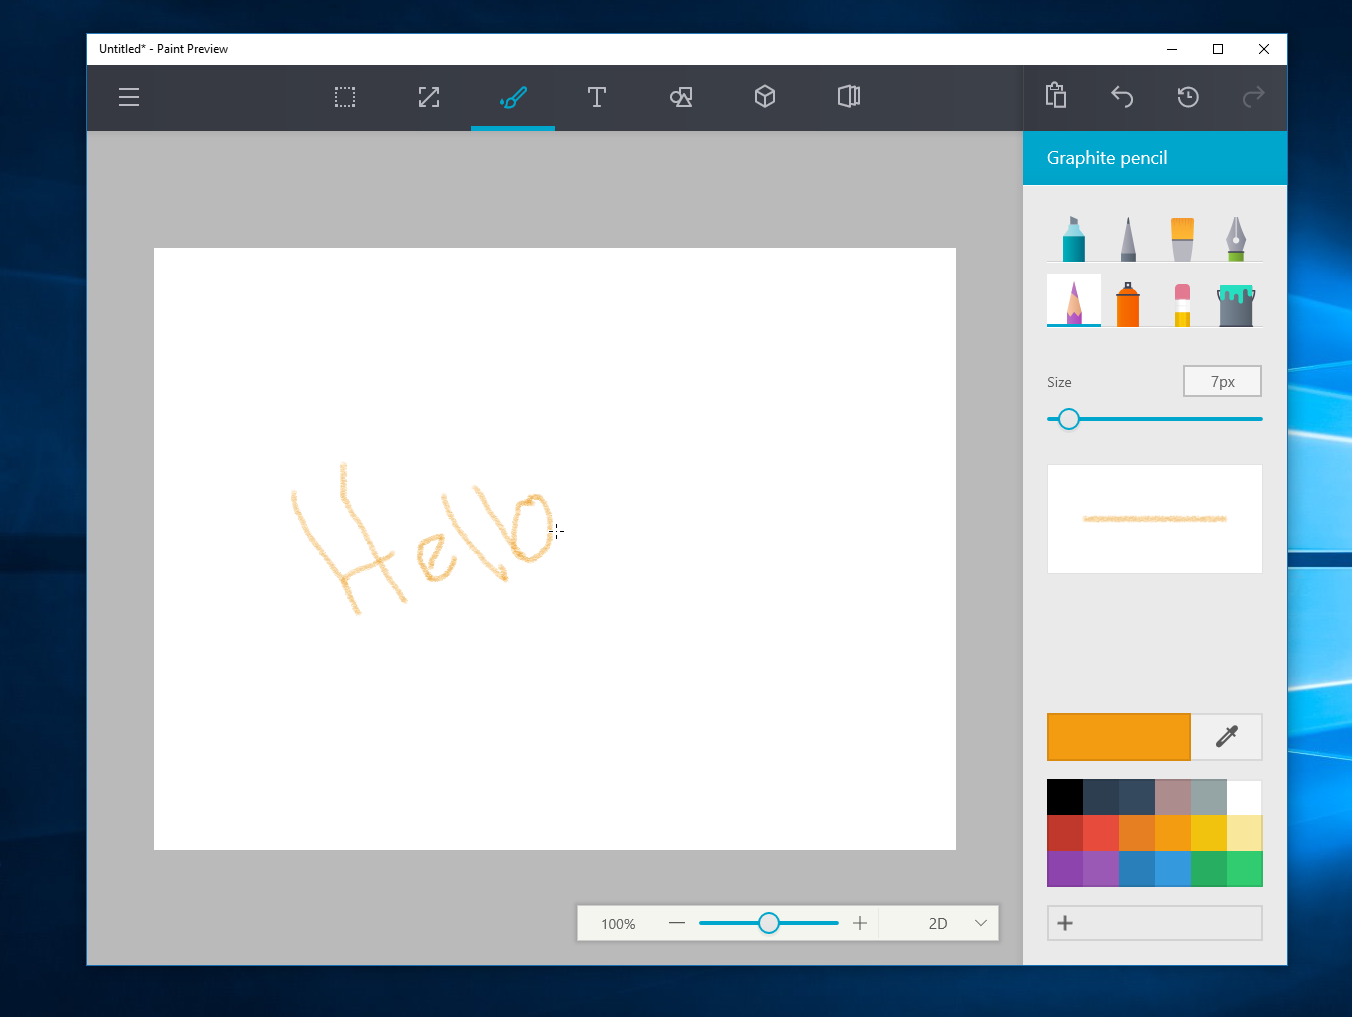 Microsoft's redesigned paint app for windows 10 looks awesome.